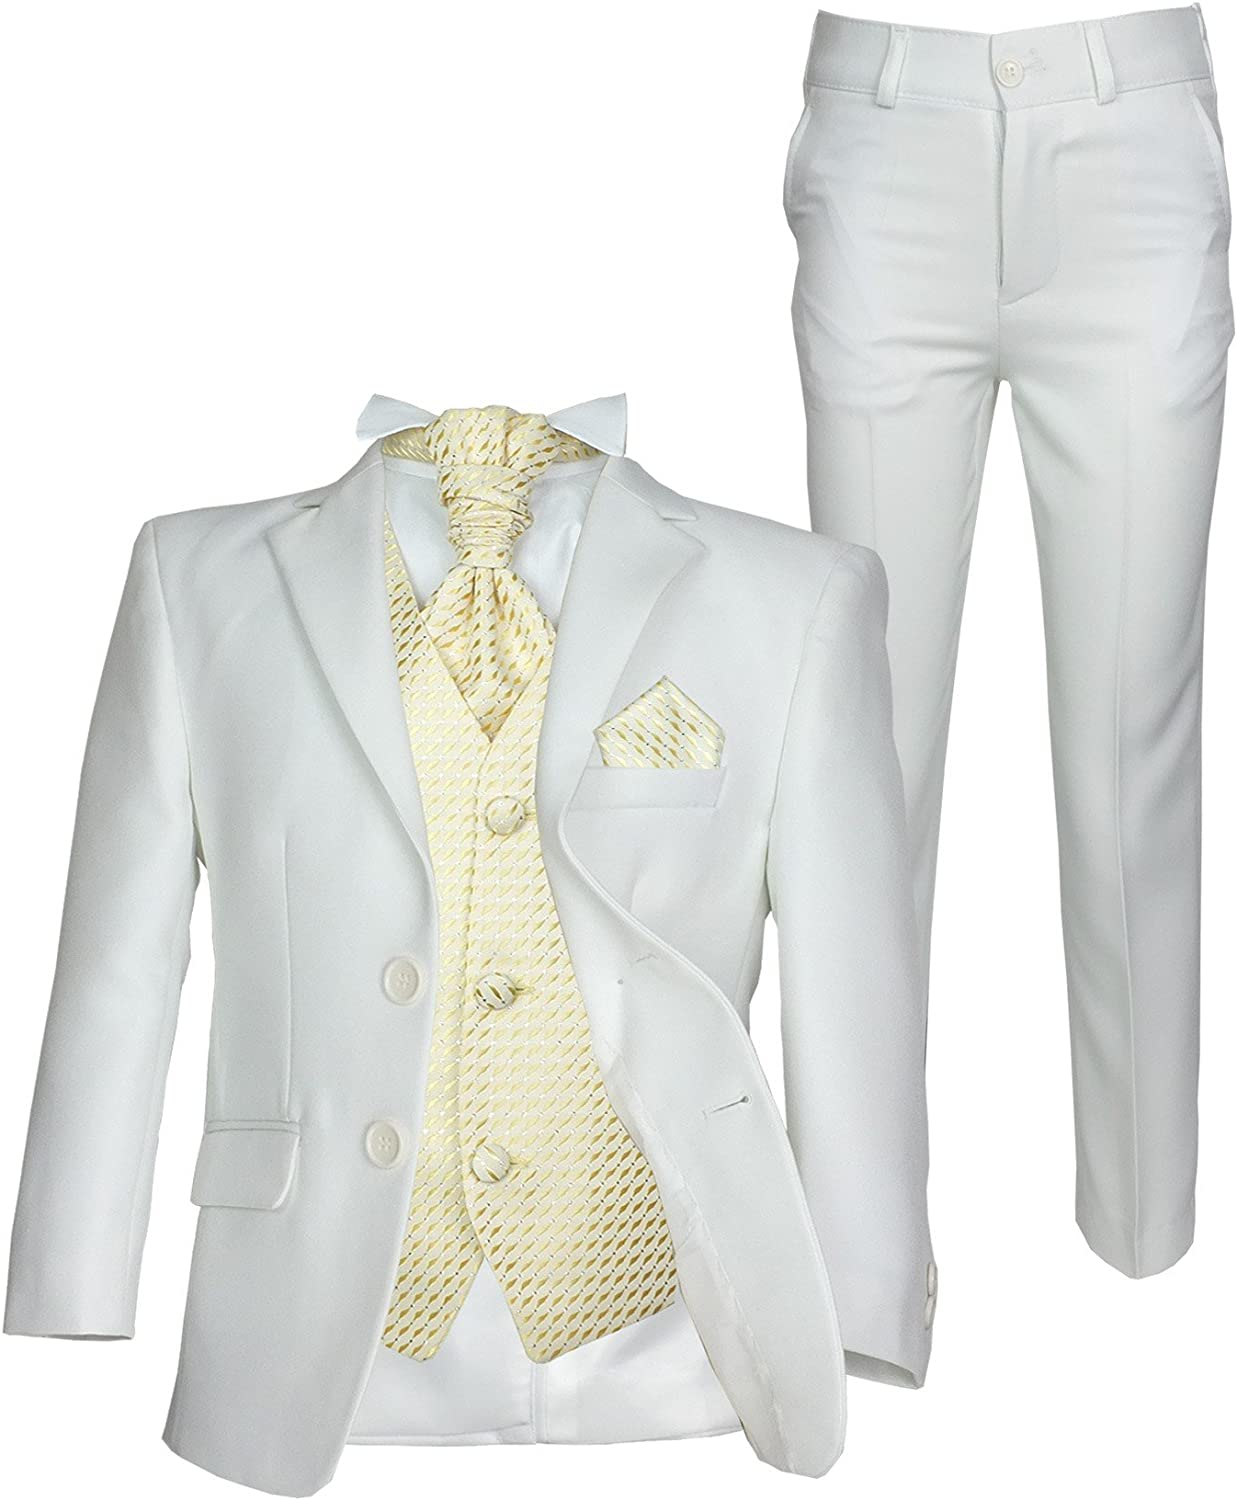 SIRRI Page Boys Formal Ivory Gold Wedding Suit 5PC Boys Cream Suit Age 1 to 15